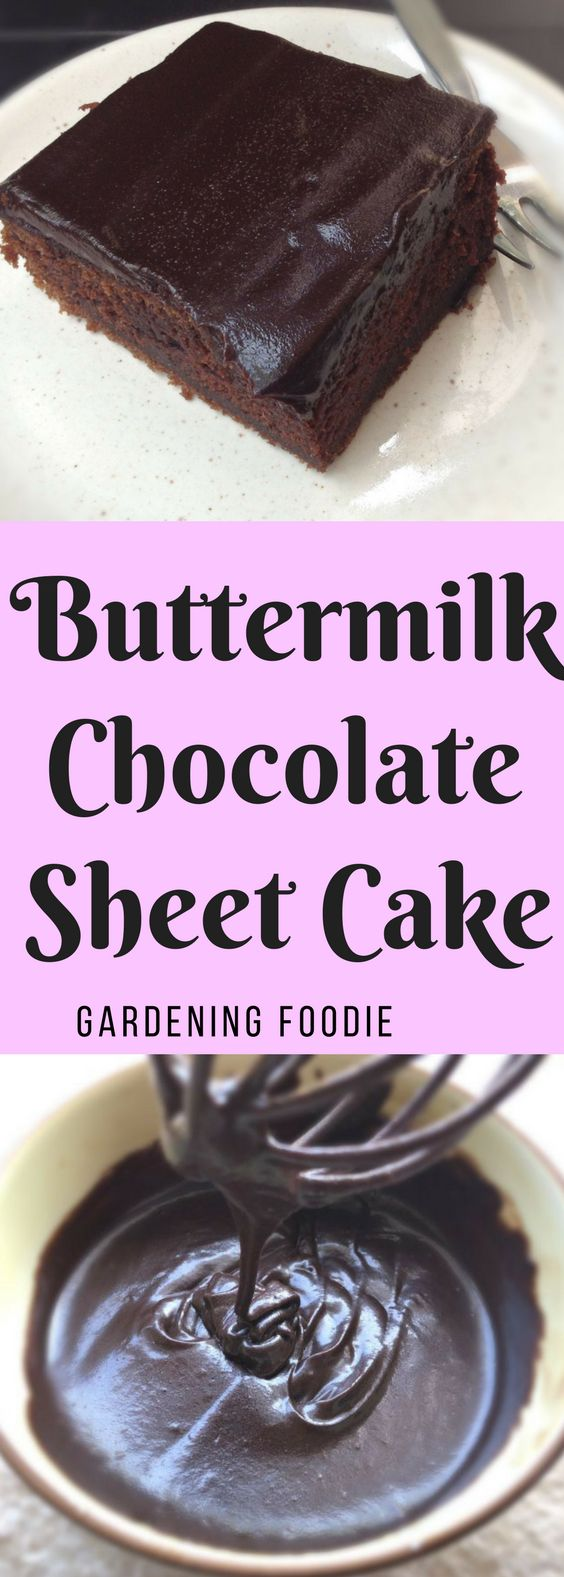 I have baked many types of chocolate cake, but no chocolate cake recipe can touch the absolute delight and rich flavour of the buttermilk chocolate sheet cake. Sheet cakes turns out perfect every time. They are never dry, always perfectly moist.Perfect to transport  so great for school bake sales, parties, and picnics.  You can bake, frost, cut and transport sheet cakes in the same tin. How much easier can it get?